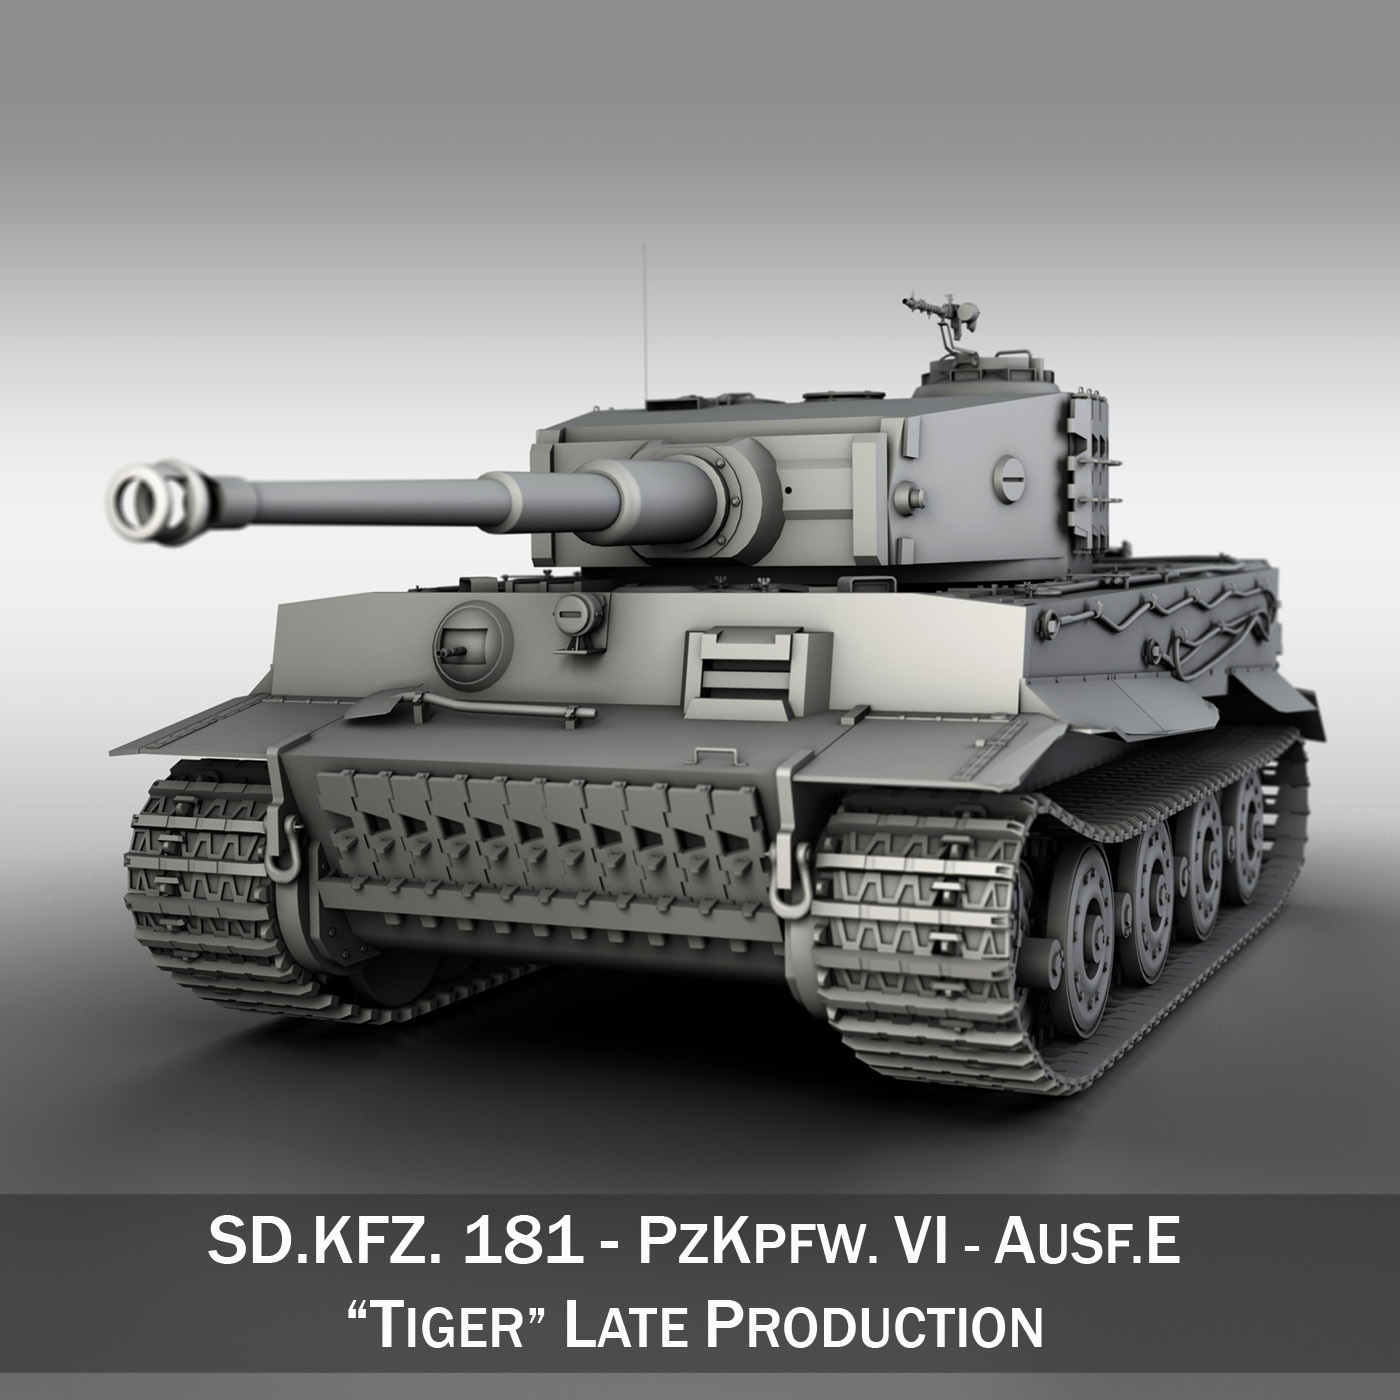 Panzer VI - Tiger - Late Production 3d model 3ds fbx c4d lwo obj 292946